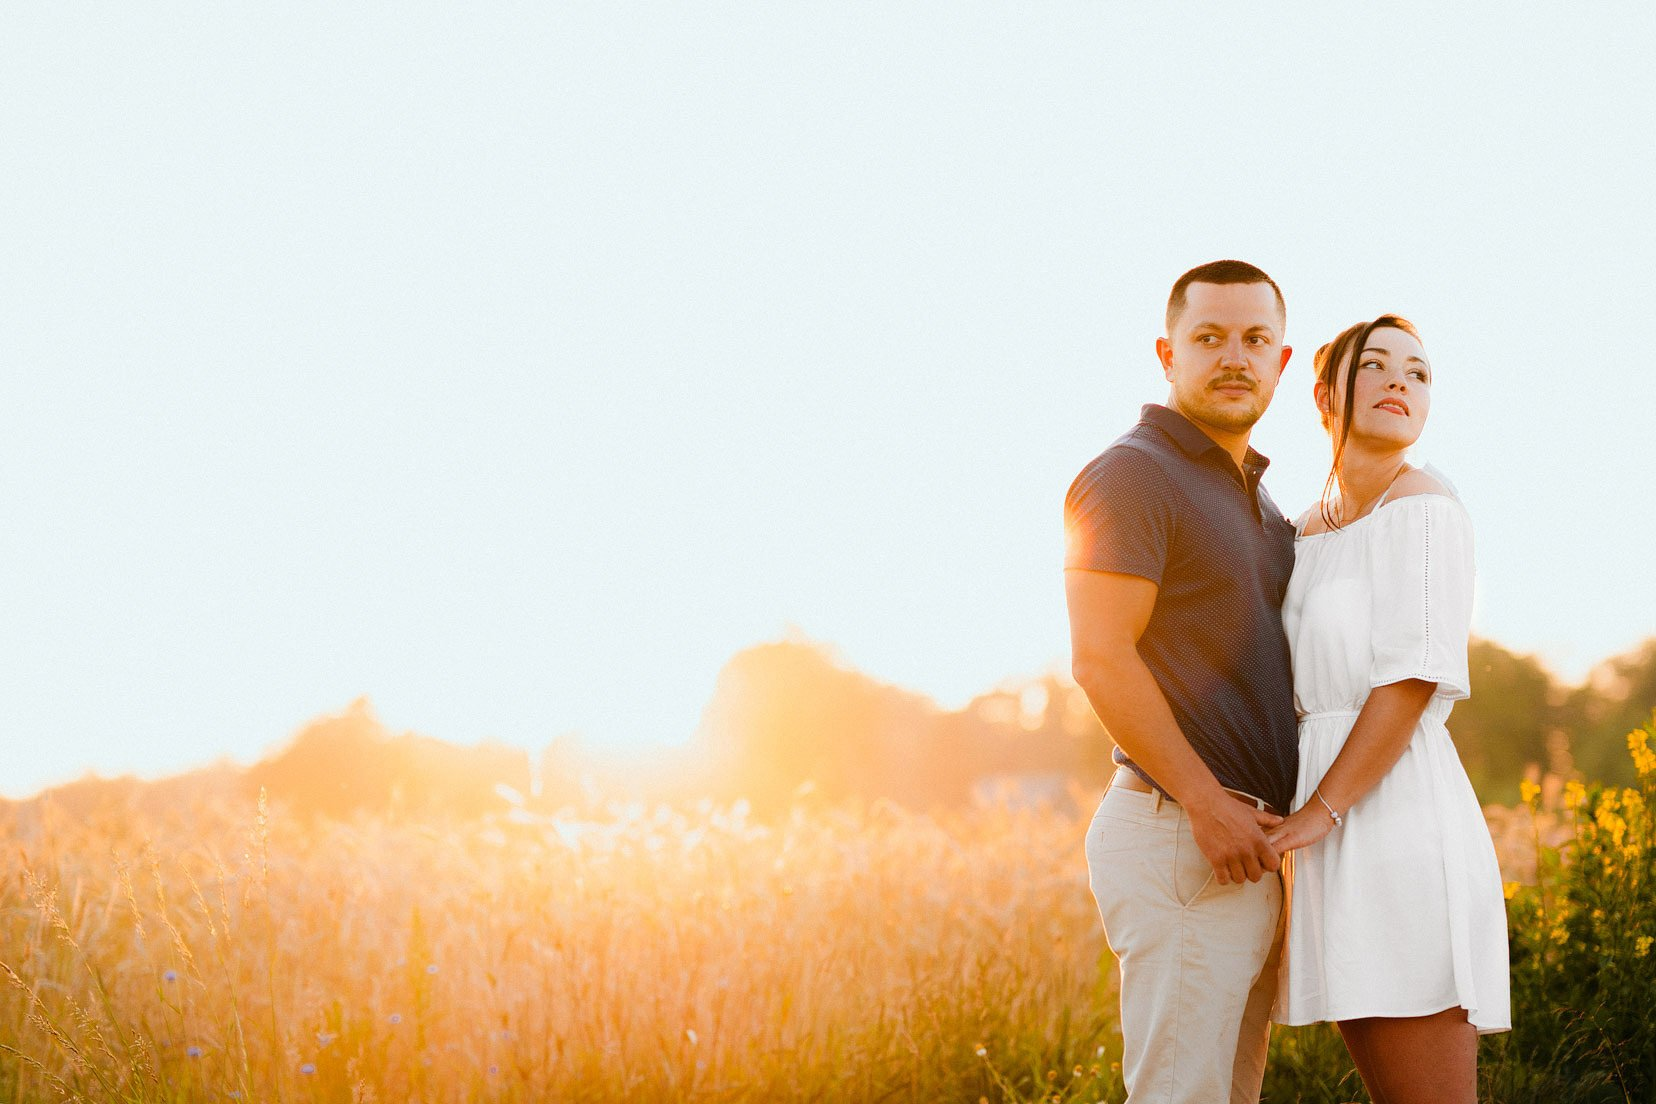 destination engagement photography 53 - Destination Engagement Photography - Anna + Adam